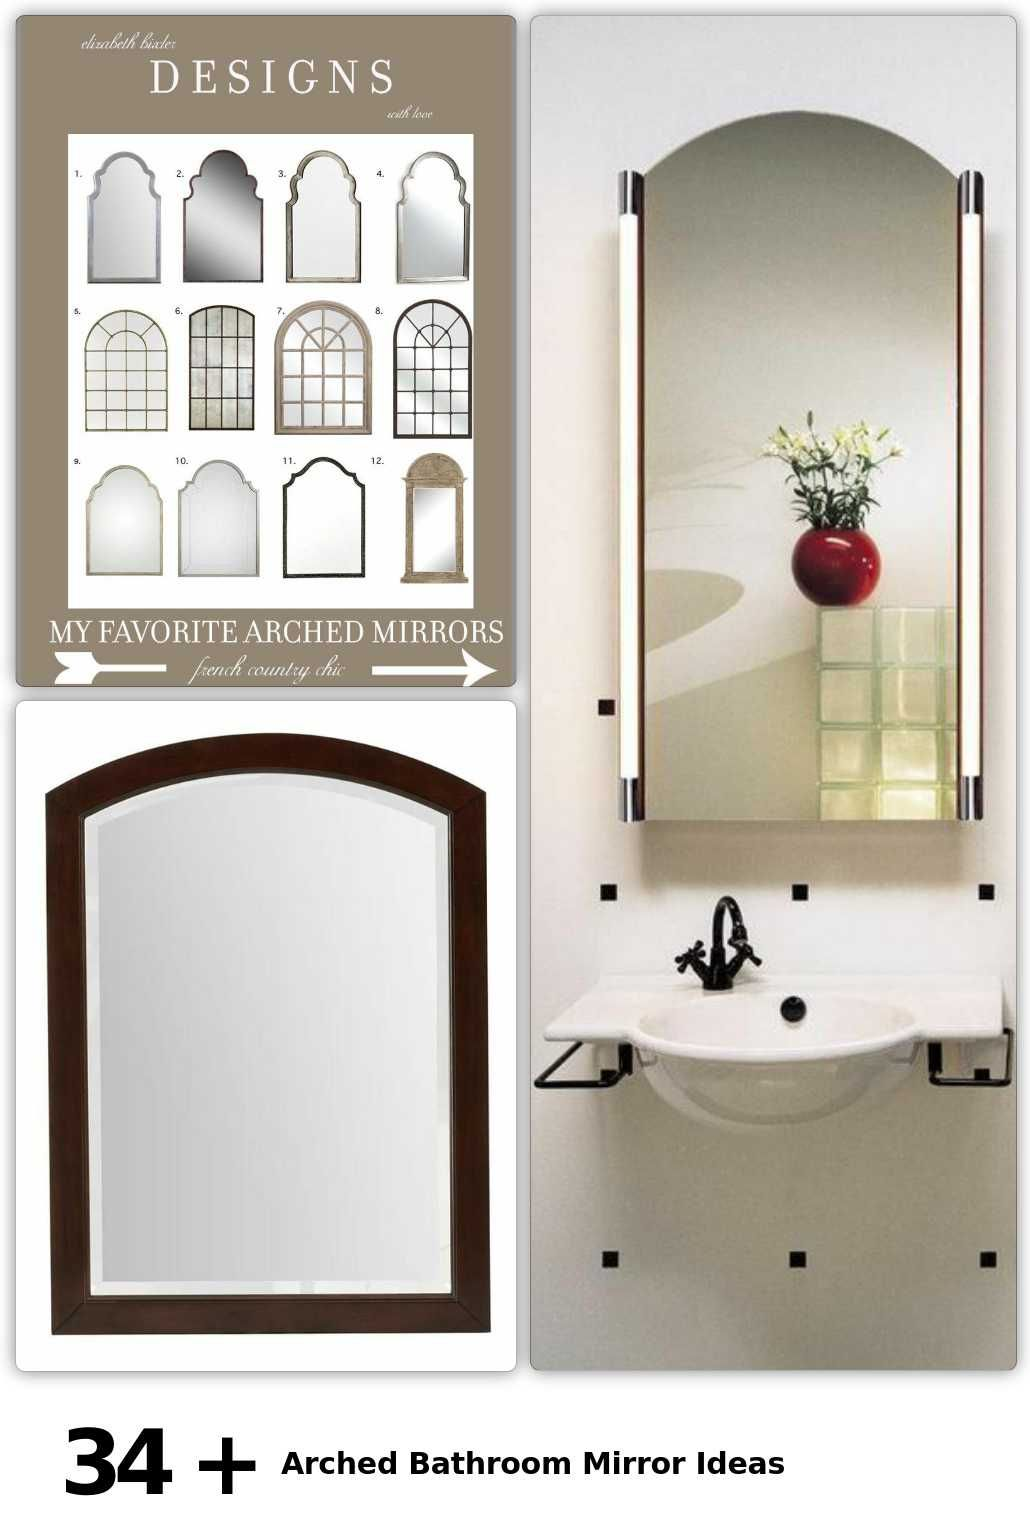 34 Arched Bathroom Mirror Ideas In 2020